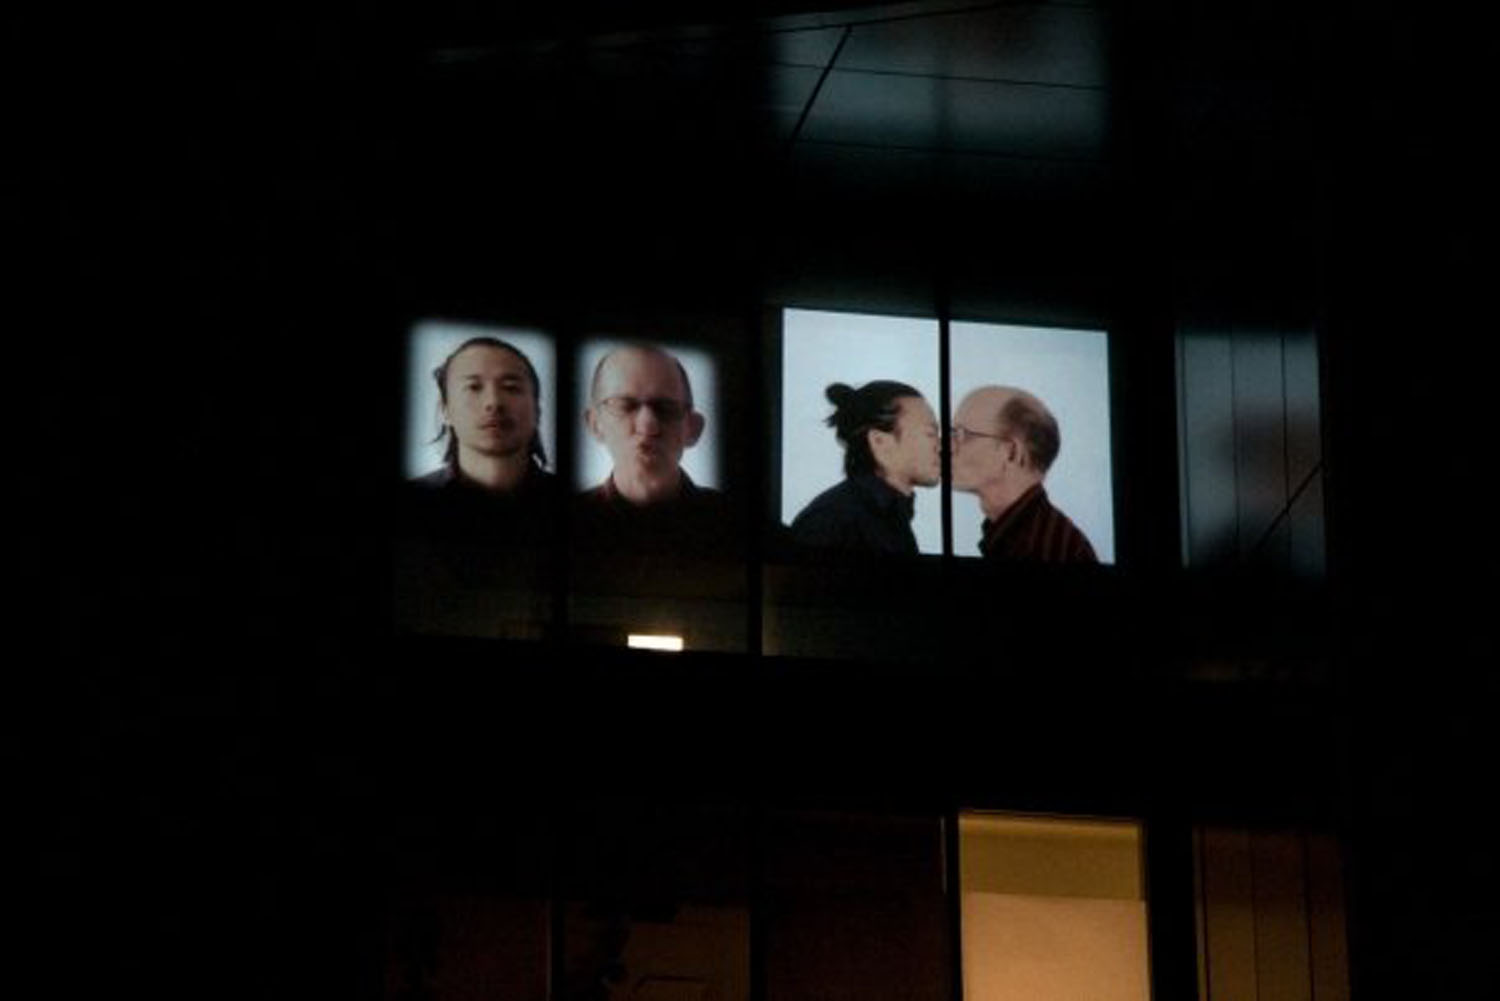 Kiss I (2008) by Annie Onyi Cheung, photo by David Reyes